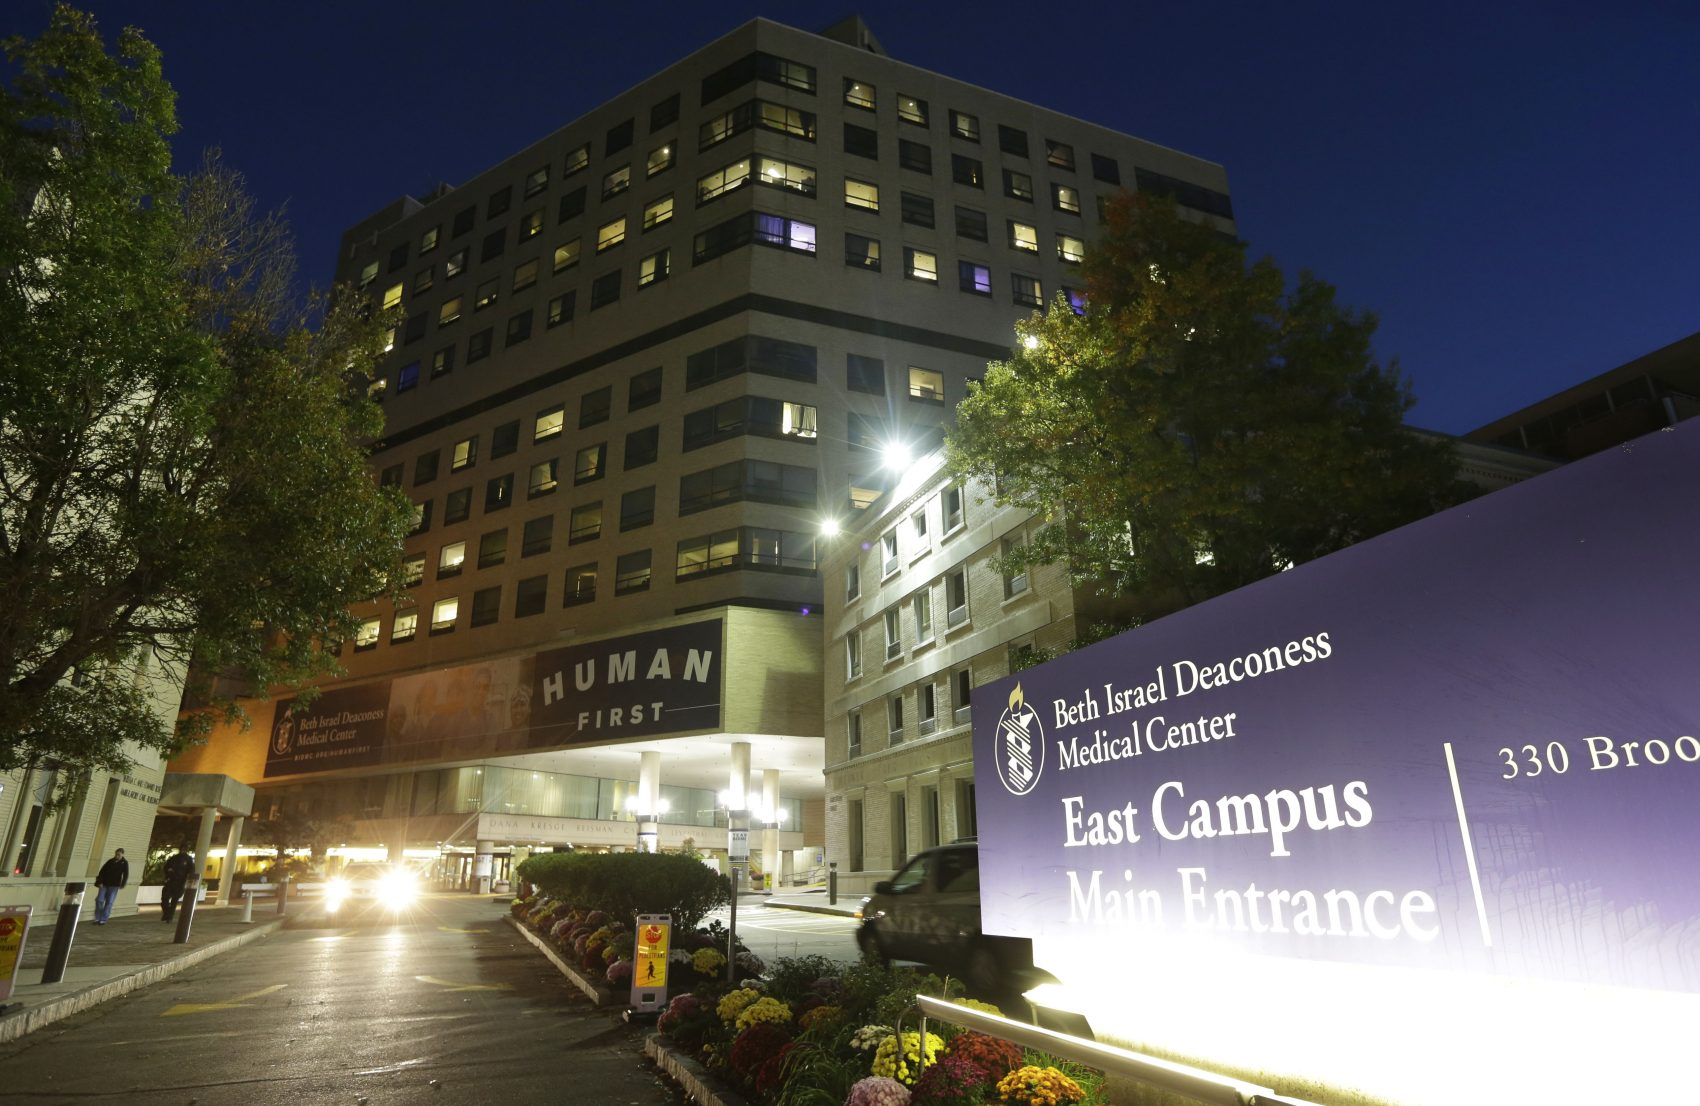 The entrance to Beth Israel Deaconess Medical Center in Boston is seen in 2014. (Steven Senne/AP)